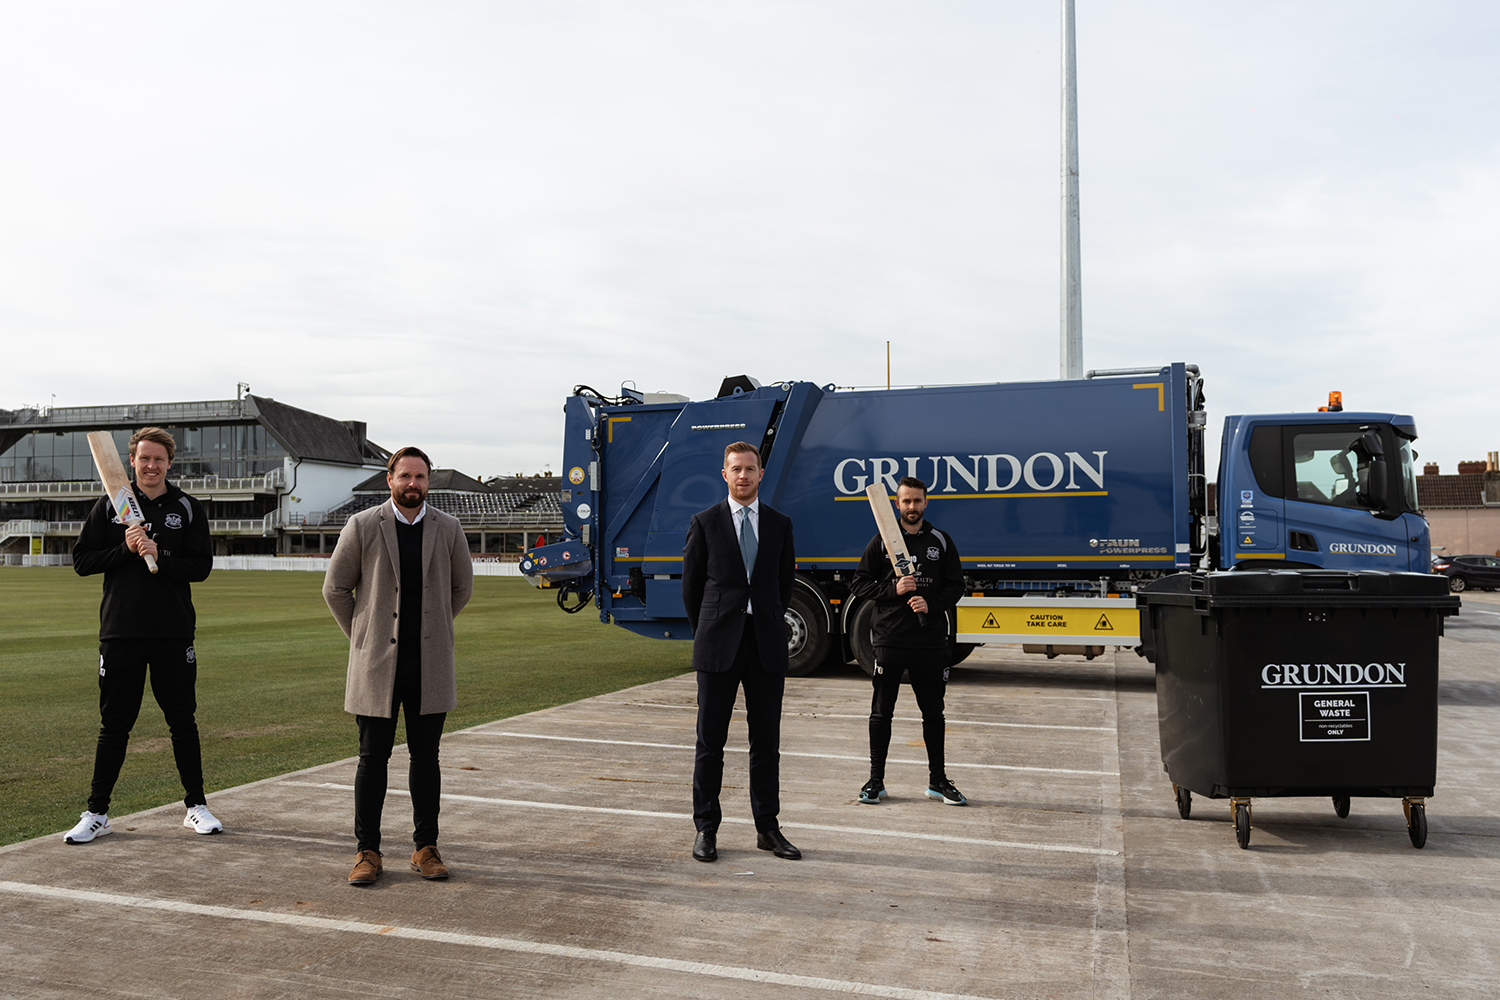 Celebrating the announcement of the new sustainability partnership: (from left to right) George Scott, all-rounder; Joe Kaniecki, business development manager at Gloucestershire Cricket Club; Steve Hill, head of sales for Grundon Waste Management; and Gloucestershire's T20 Captain and all-rounder, Jack Taylor.